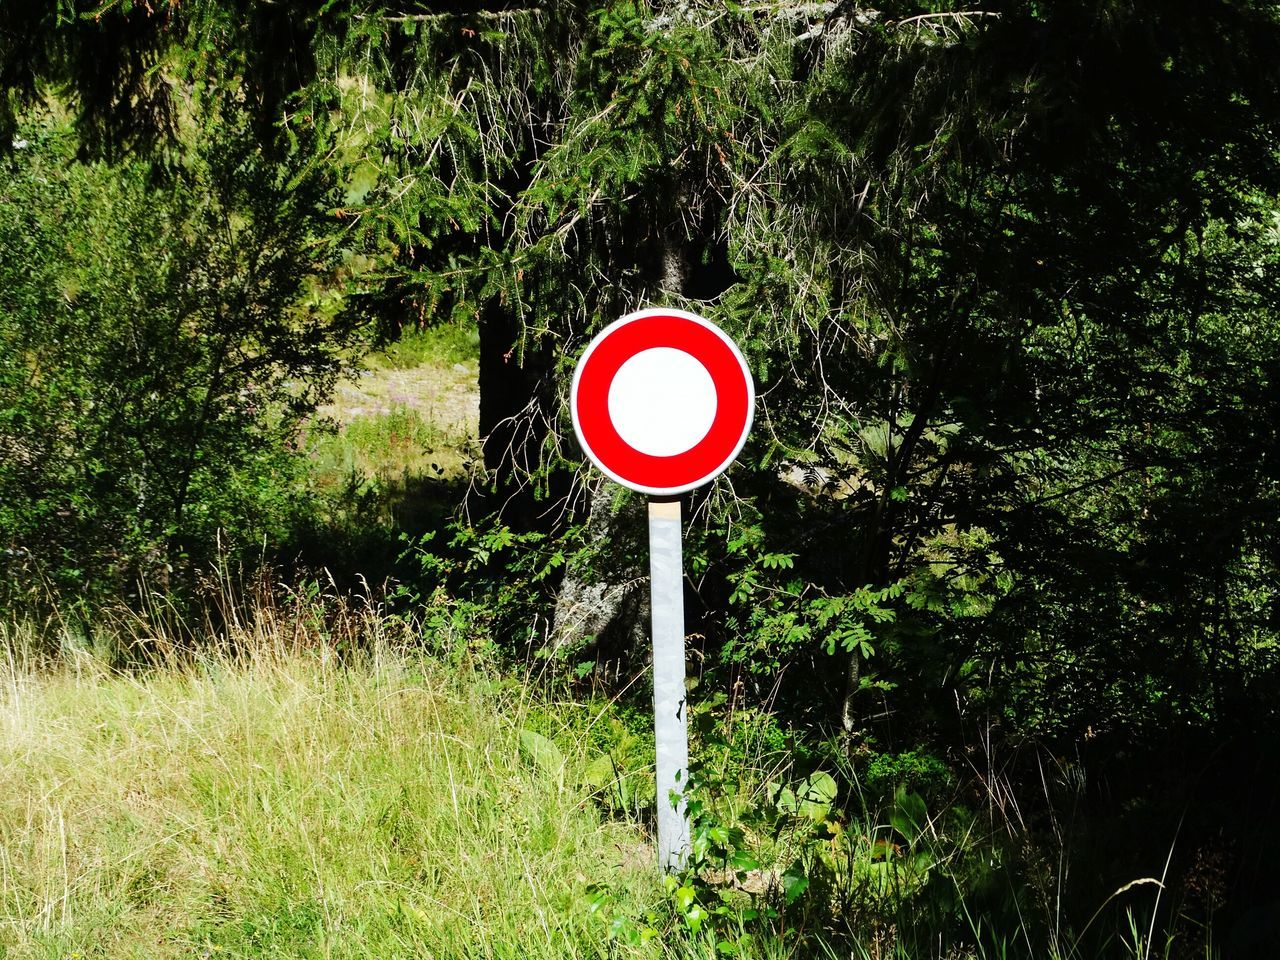 WTF? Forbidden Road Sign Roadsign Roadsign In A Forest Outdoors France Circle Red Circle White Circle Lollipop From My Point Of View Check This Out France Photos Auvergne